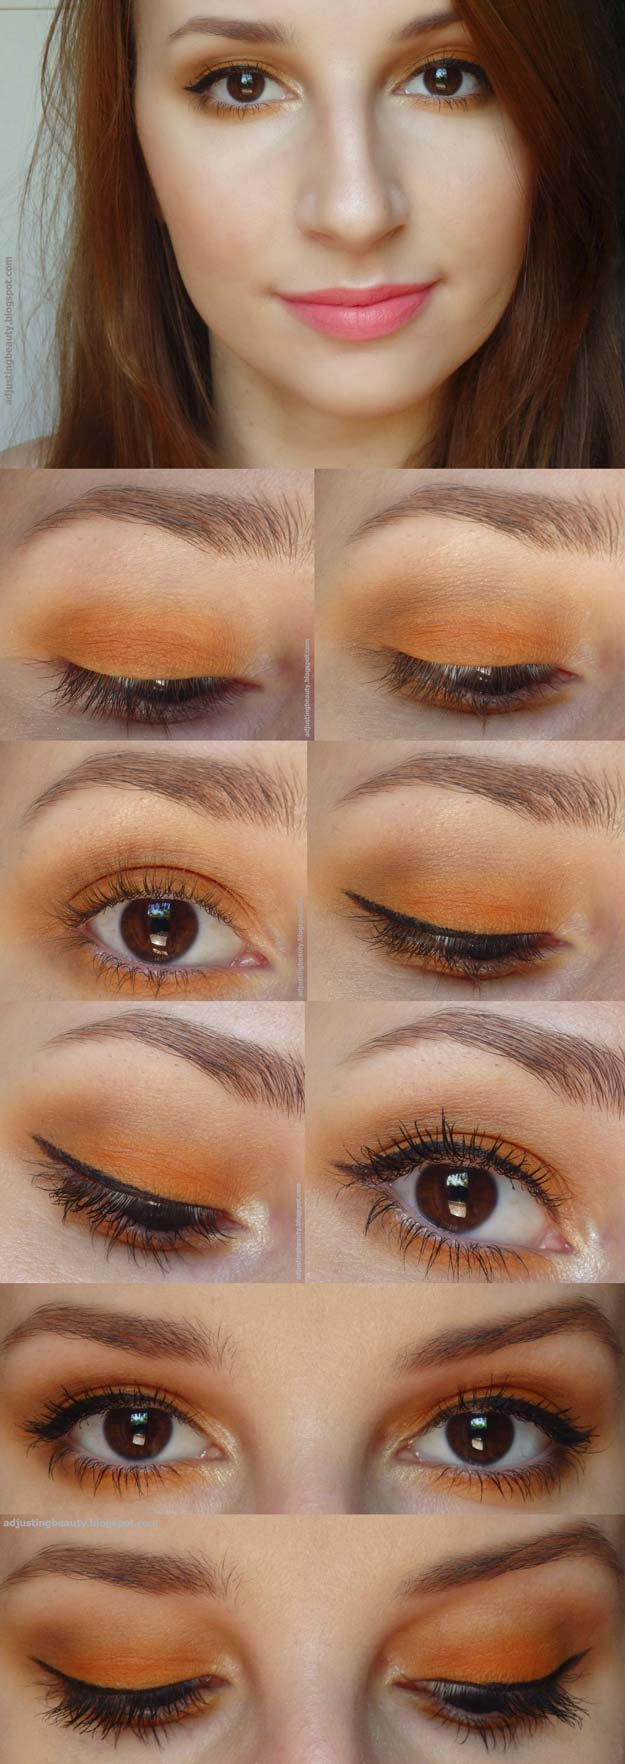 Best Eyeshadow Tutorials - Orange Eye Makeup - Easy Step by Step How To For Eye Shadow - Cool Makeup Tricks and Eye Makeup Tutorial With Instructions - Quick Ways to Do Smoky Eye, Natural Makeup, Looks for Day and Evening, Brown and Blue Eyes - Cool Ideas for Beginners and Teens http://diyprojectsforteens.com/best-eyeshadow-tutorials